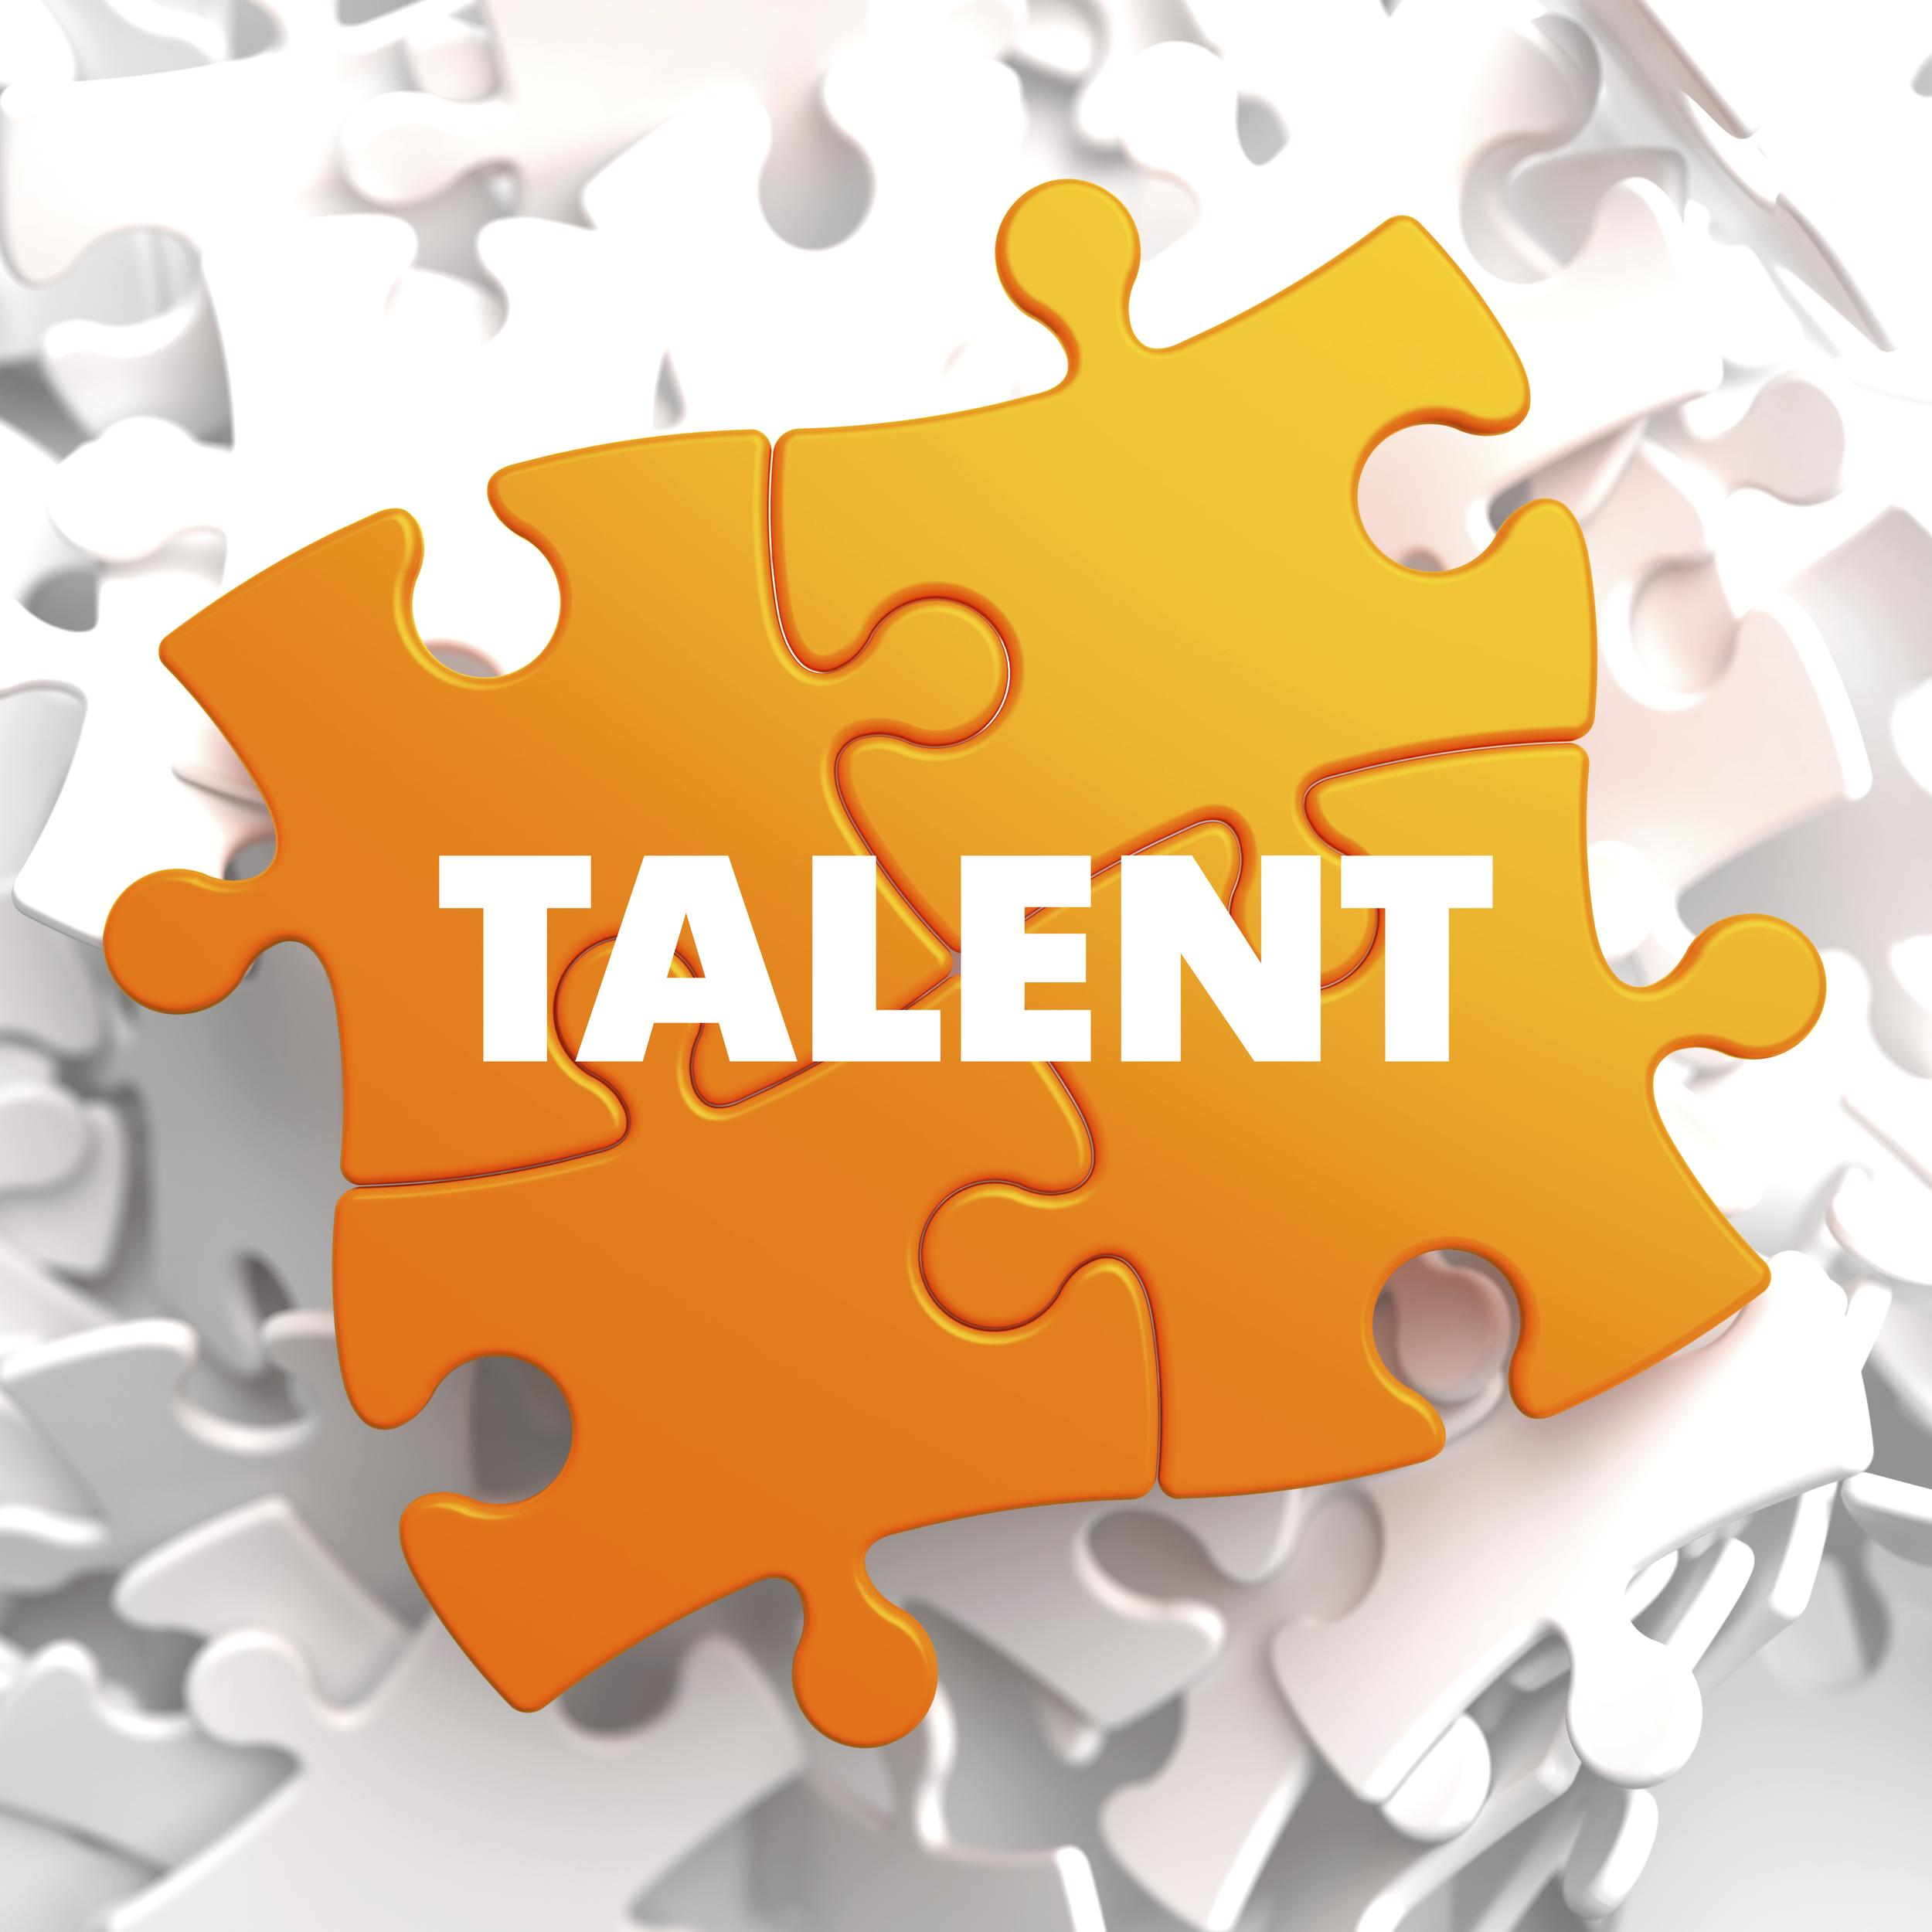 Talented people photo